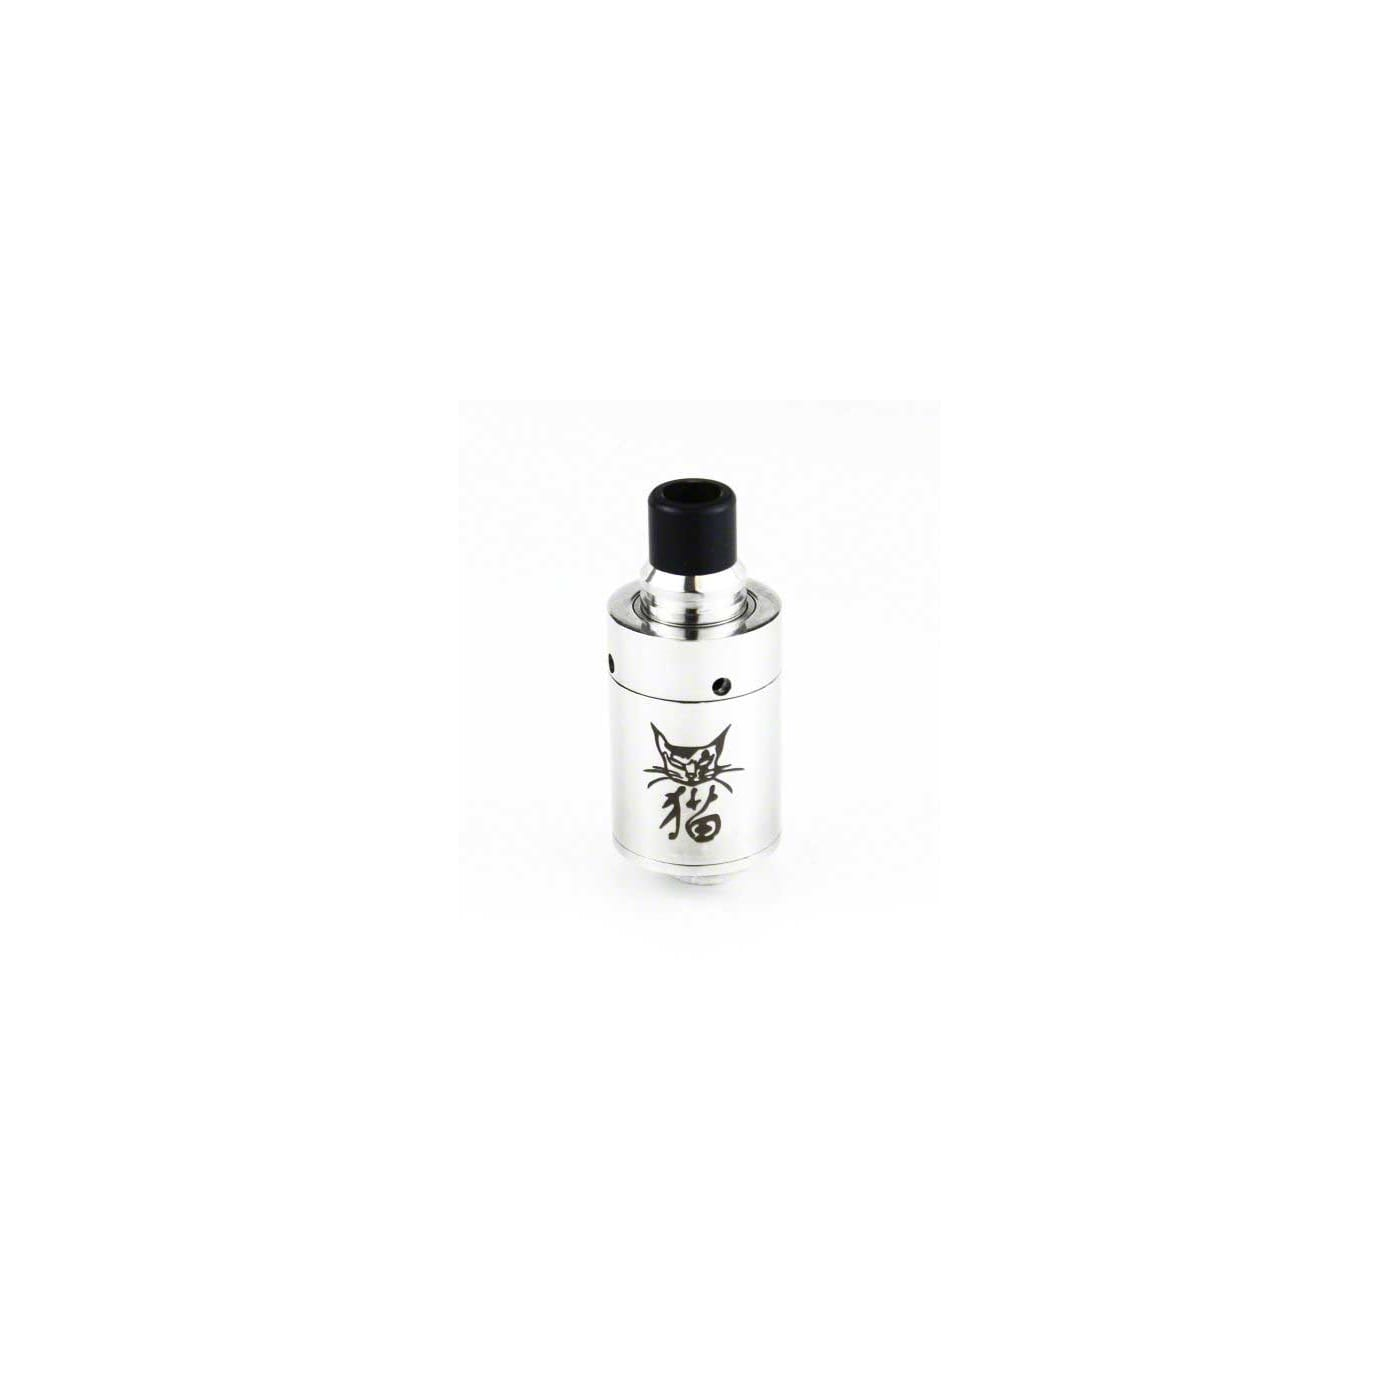 Cat Atomizer Clone - Stainless Steel